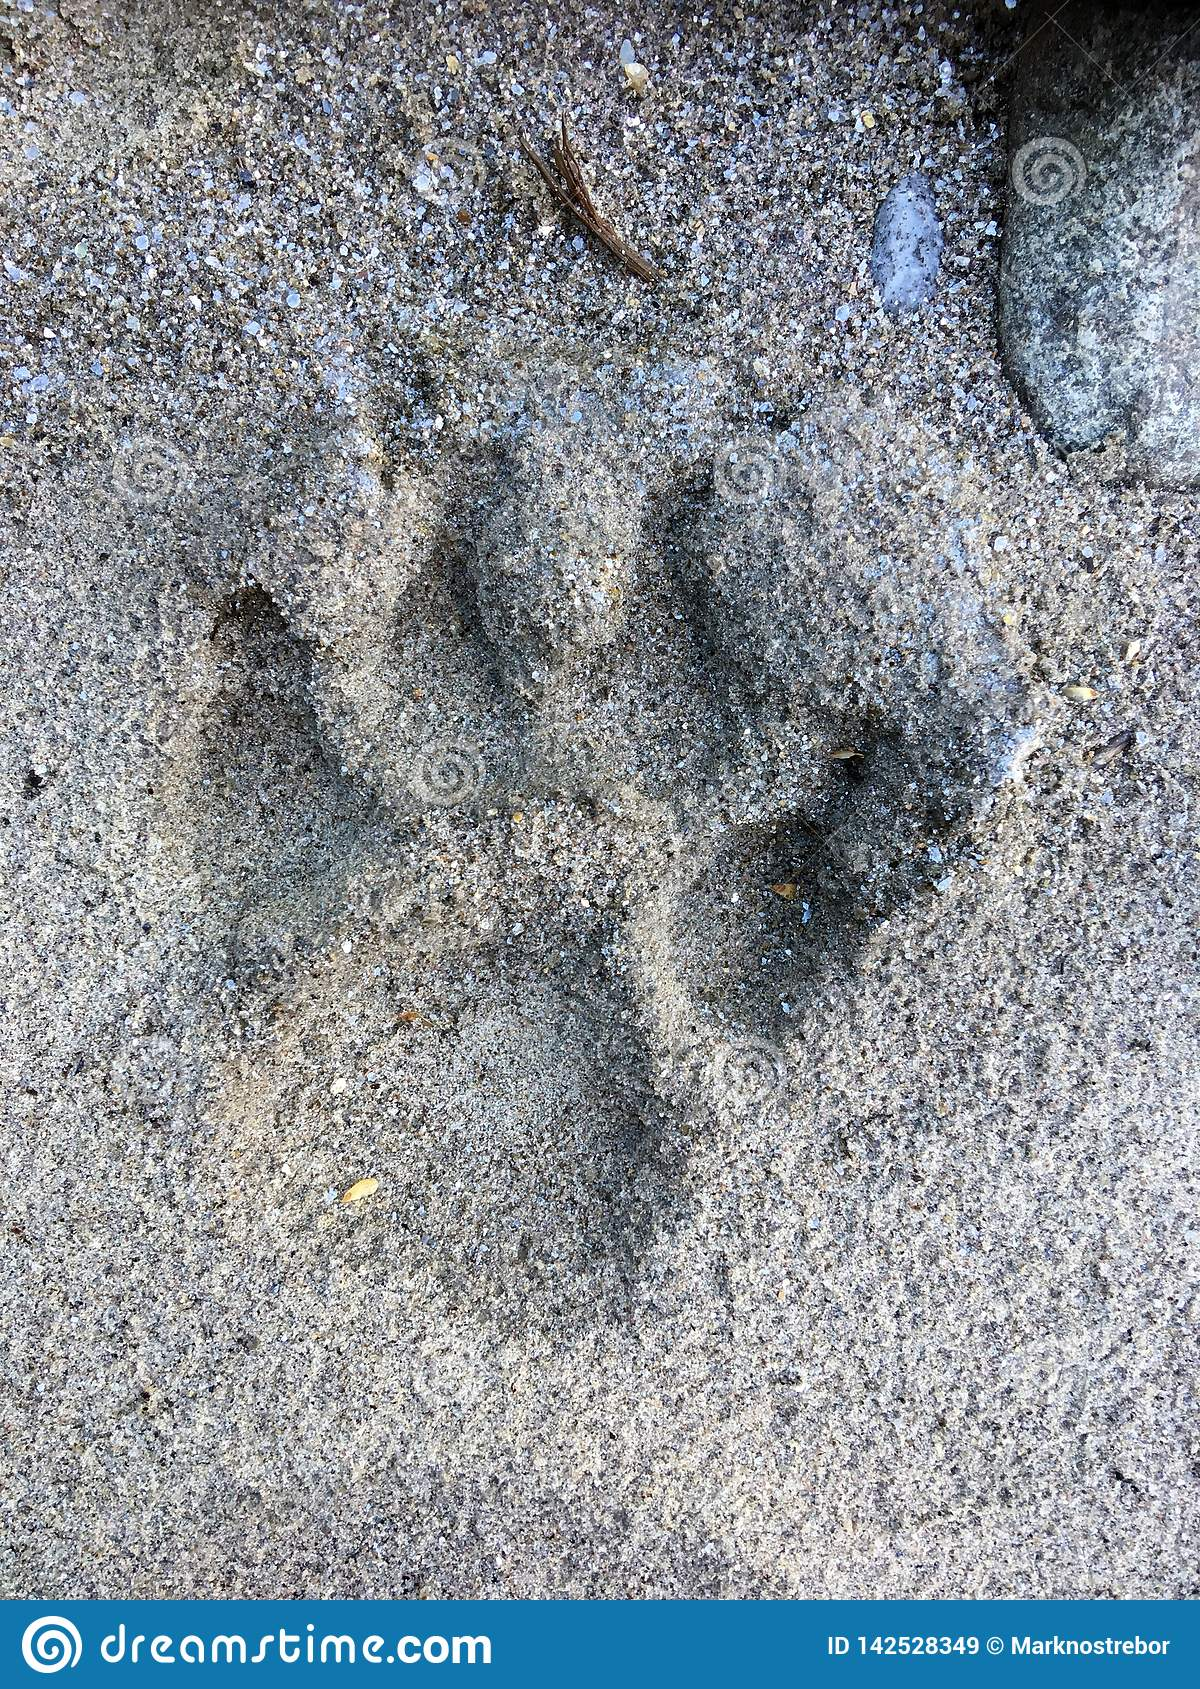 Fading Wolf paw print in sand of Canoe River, British Columbia, Canada.